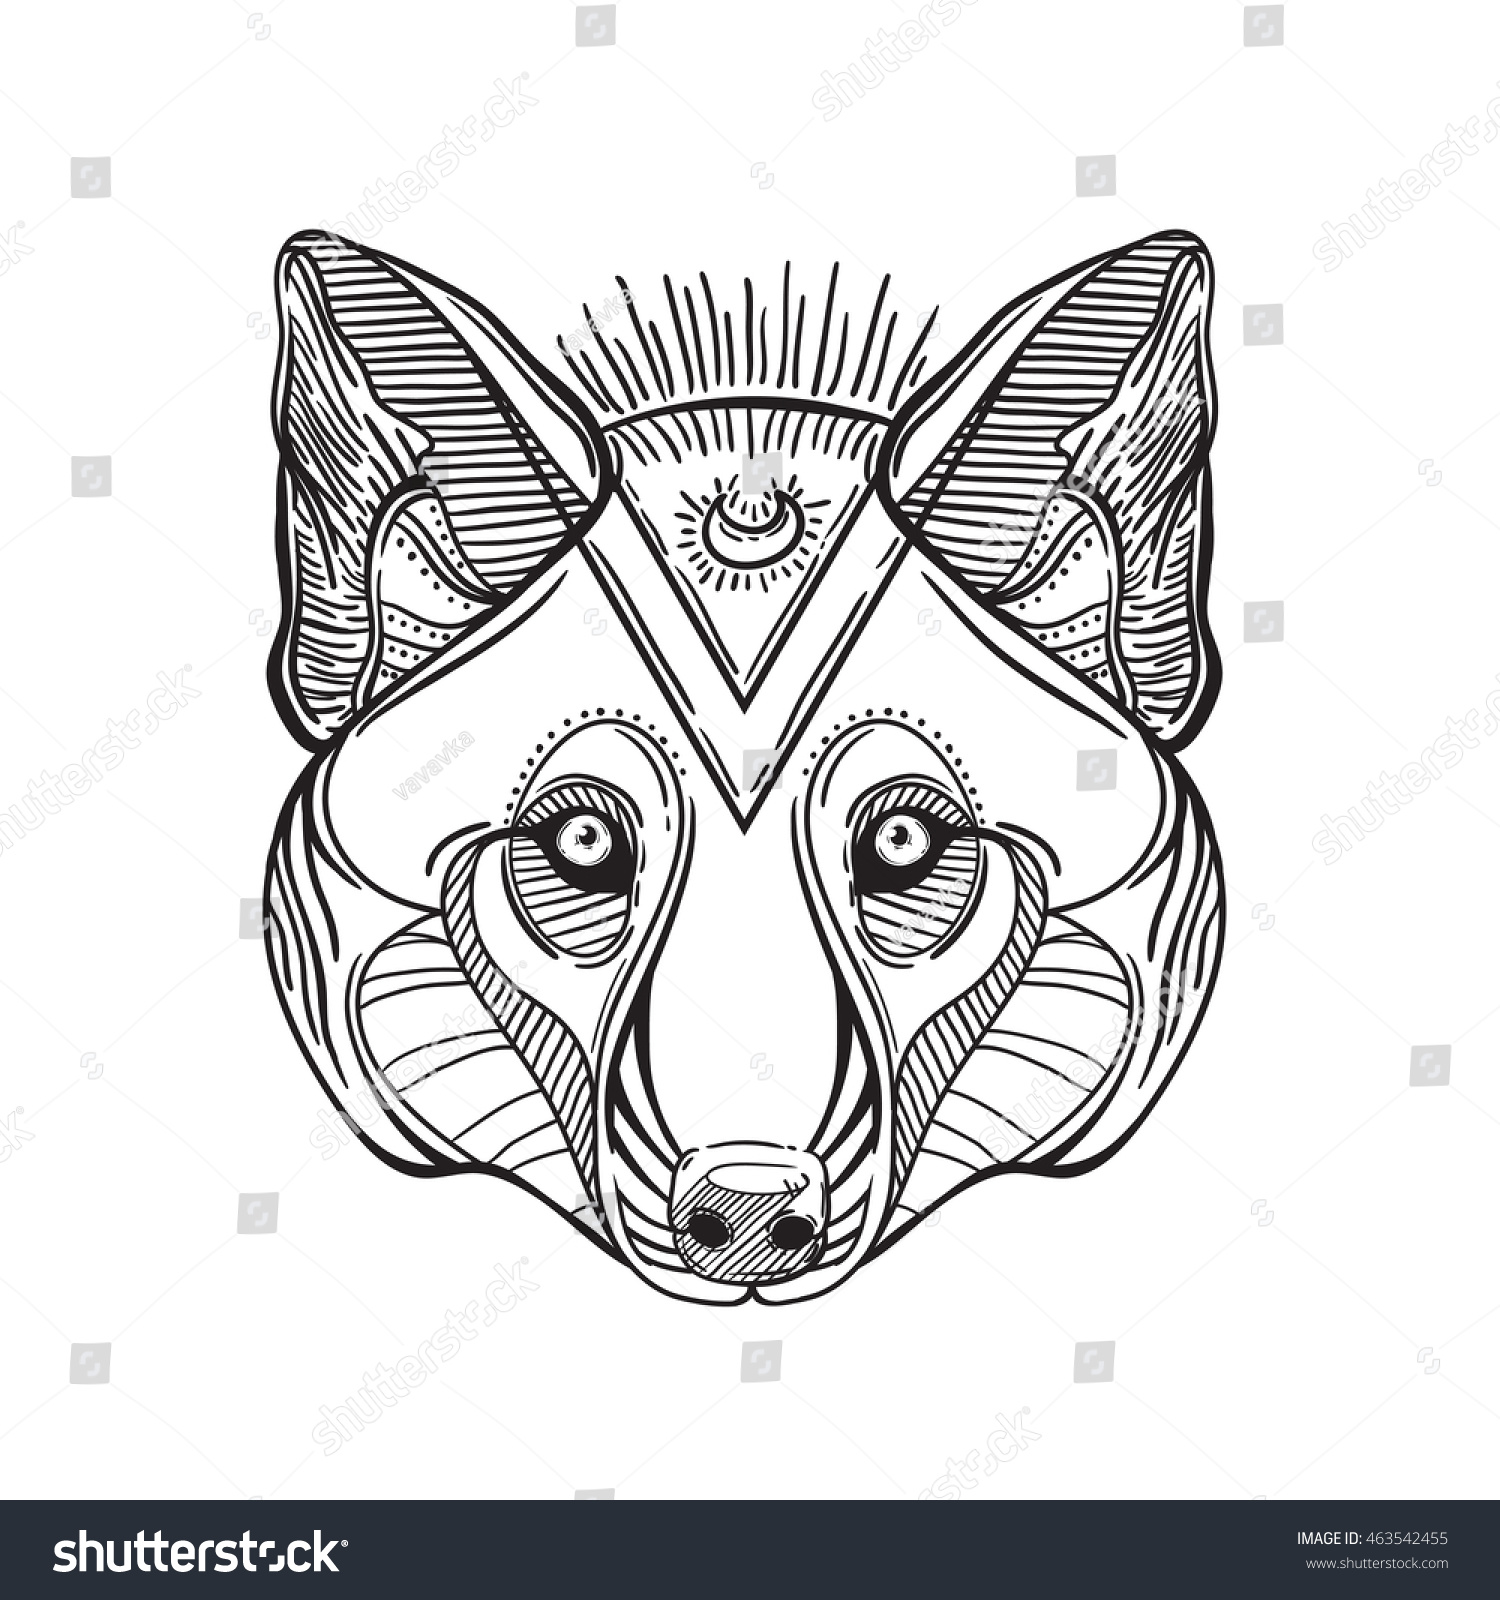 Animal Head Print For Adult Anti Stress Coloring Page Ethnic Patterned Ornate Hand Drawn Vector